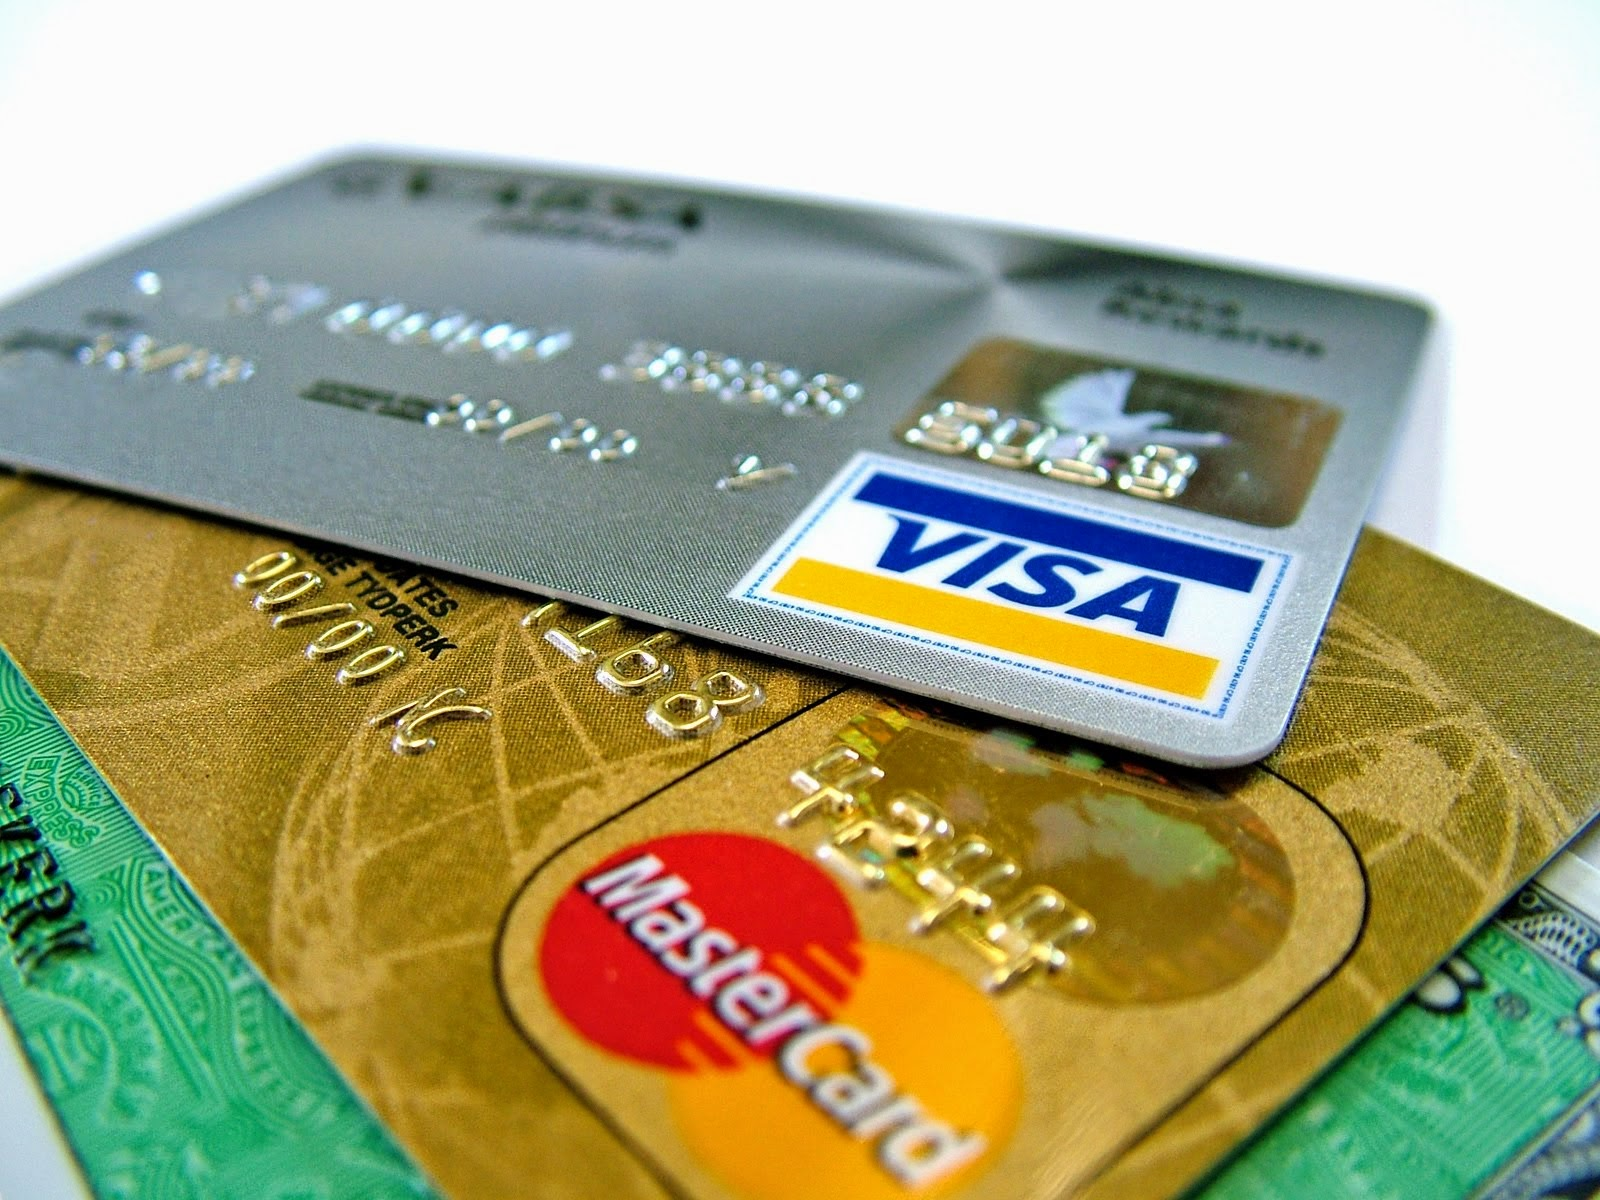 What Are The Advantage Or Benefits of Chip/PIN Credit and Debit Card?